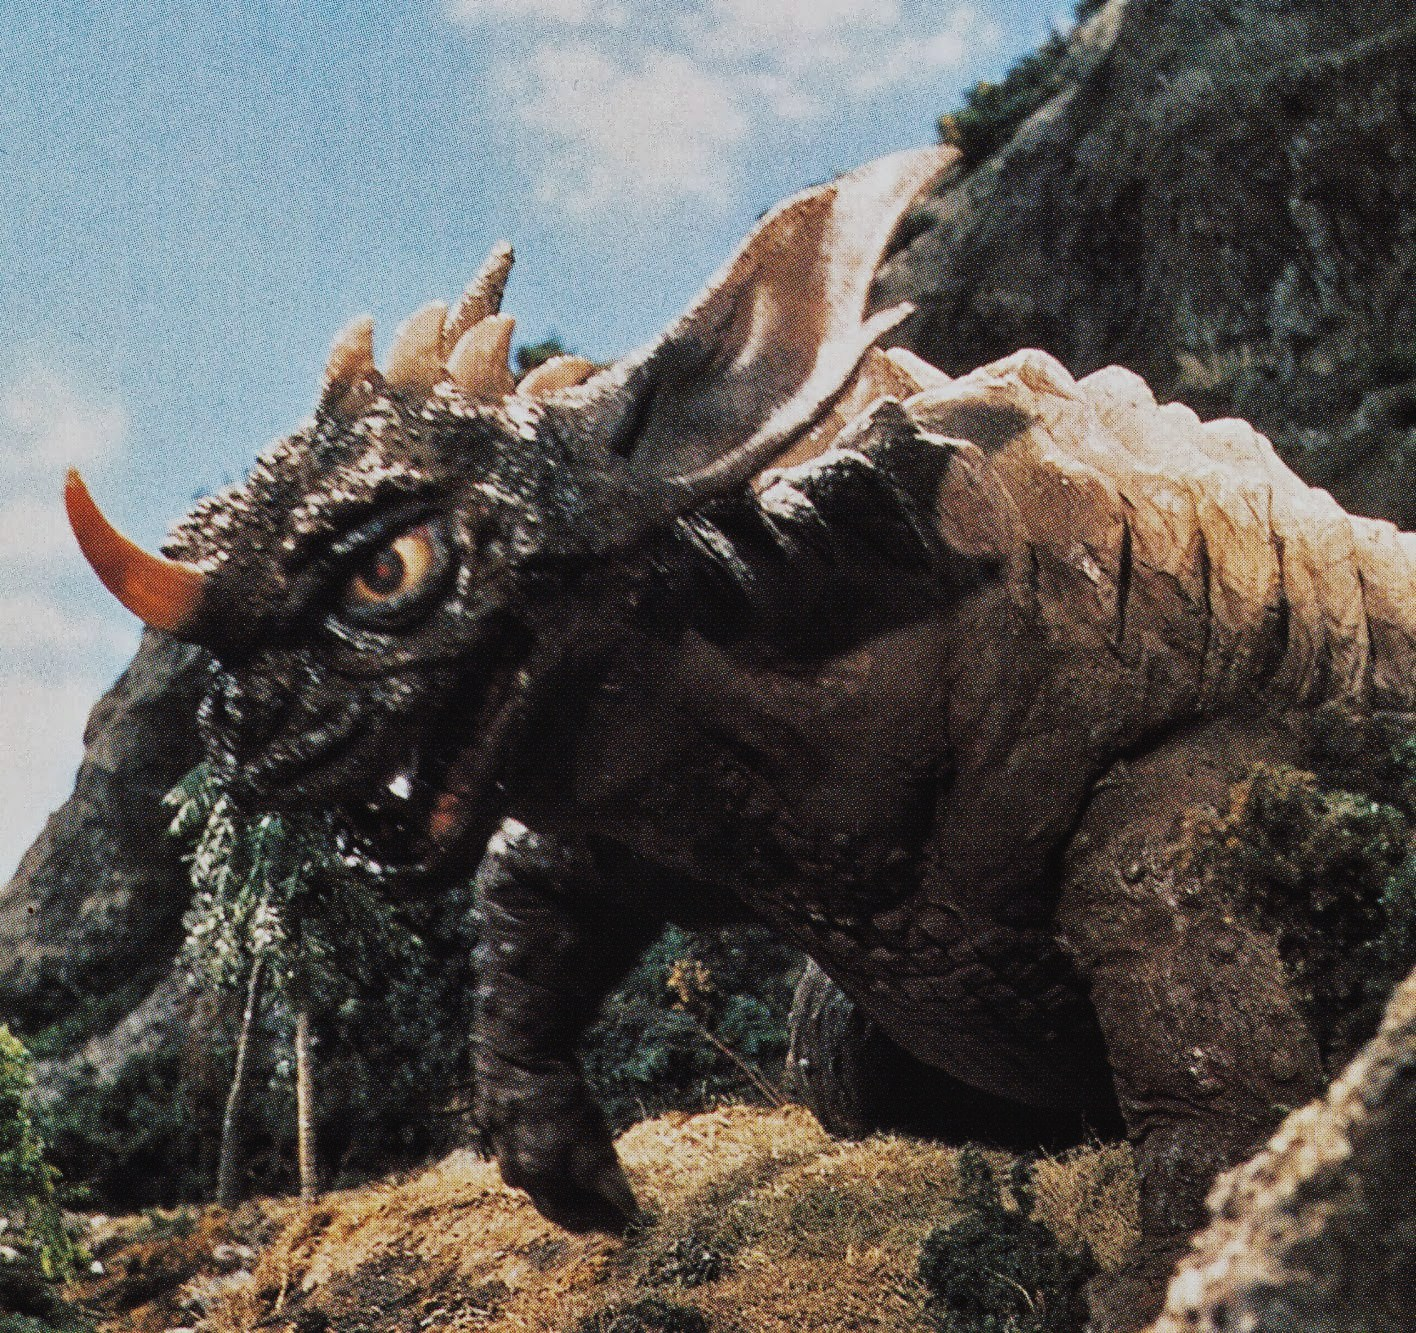 baragon godzilla unleashed - photo #38